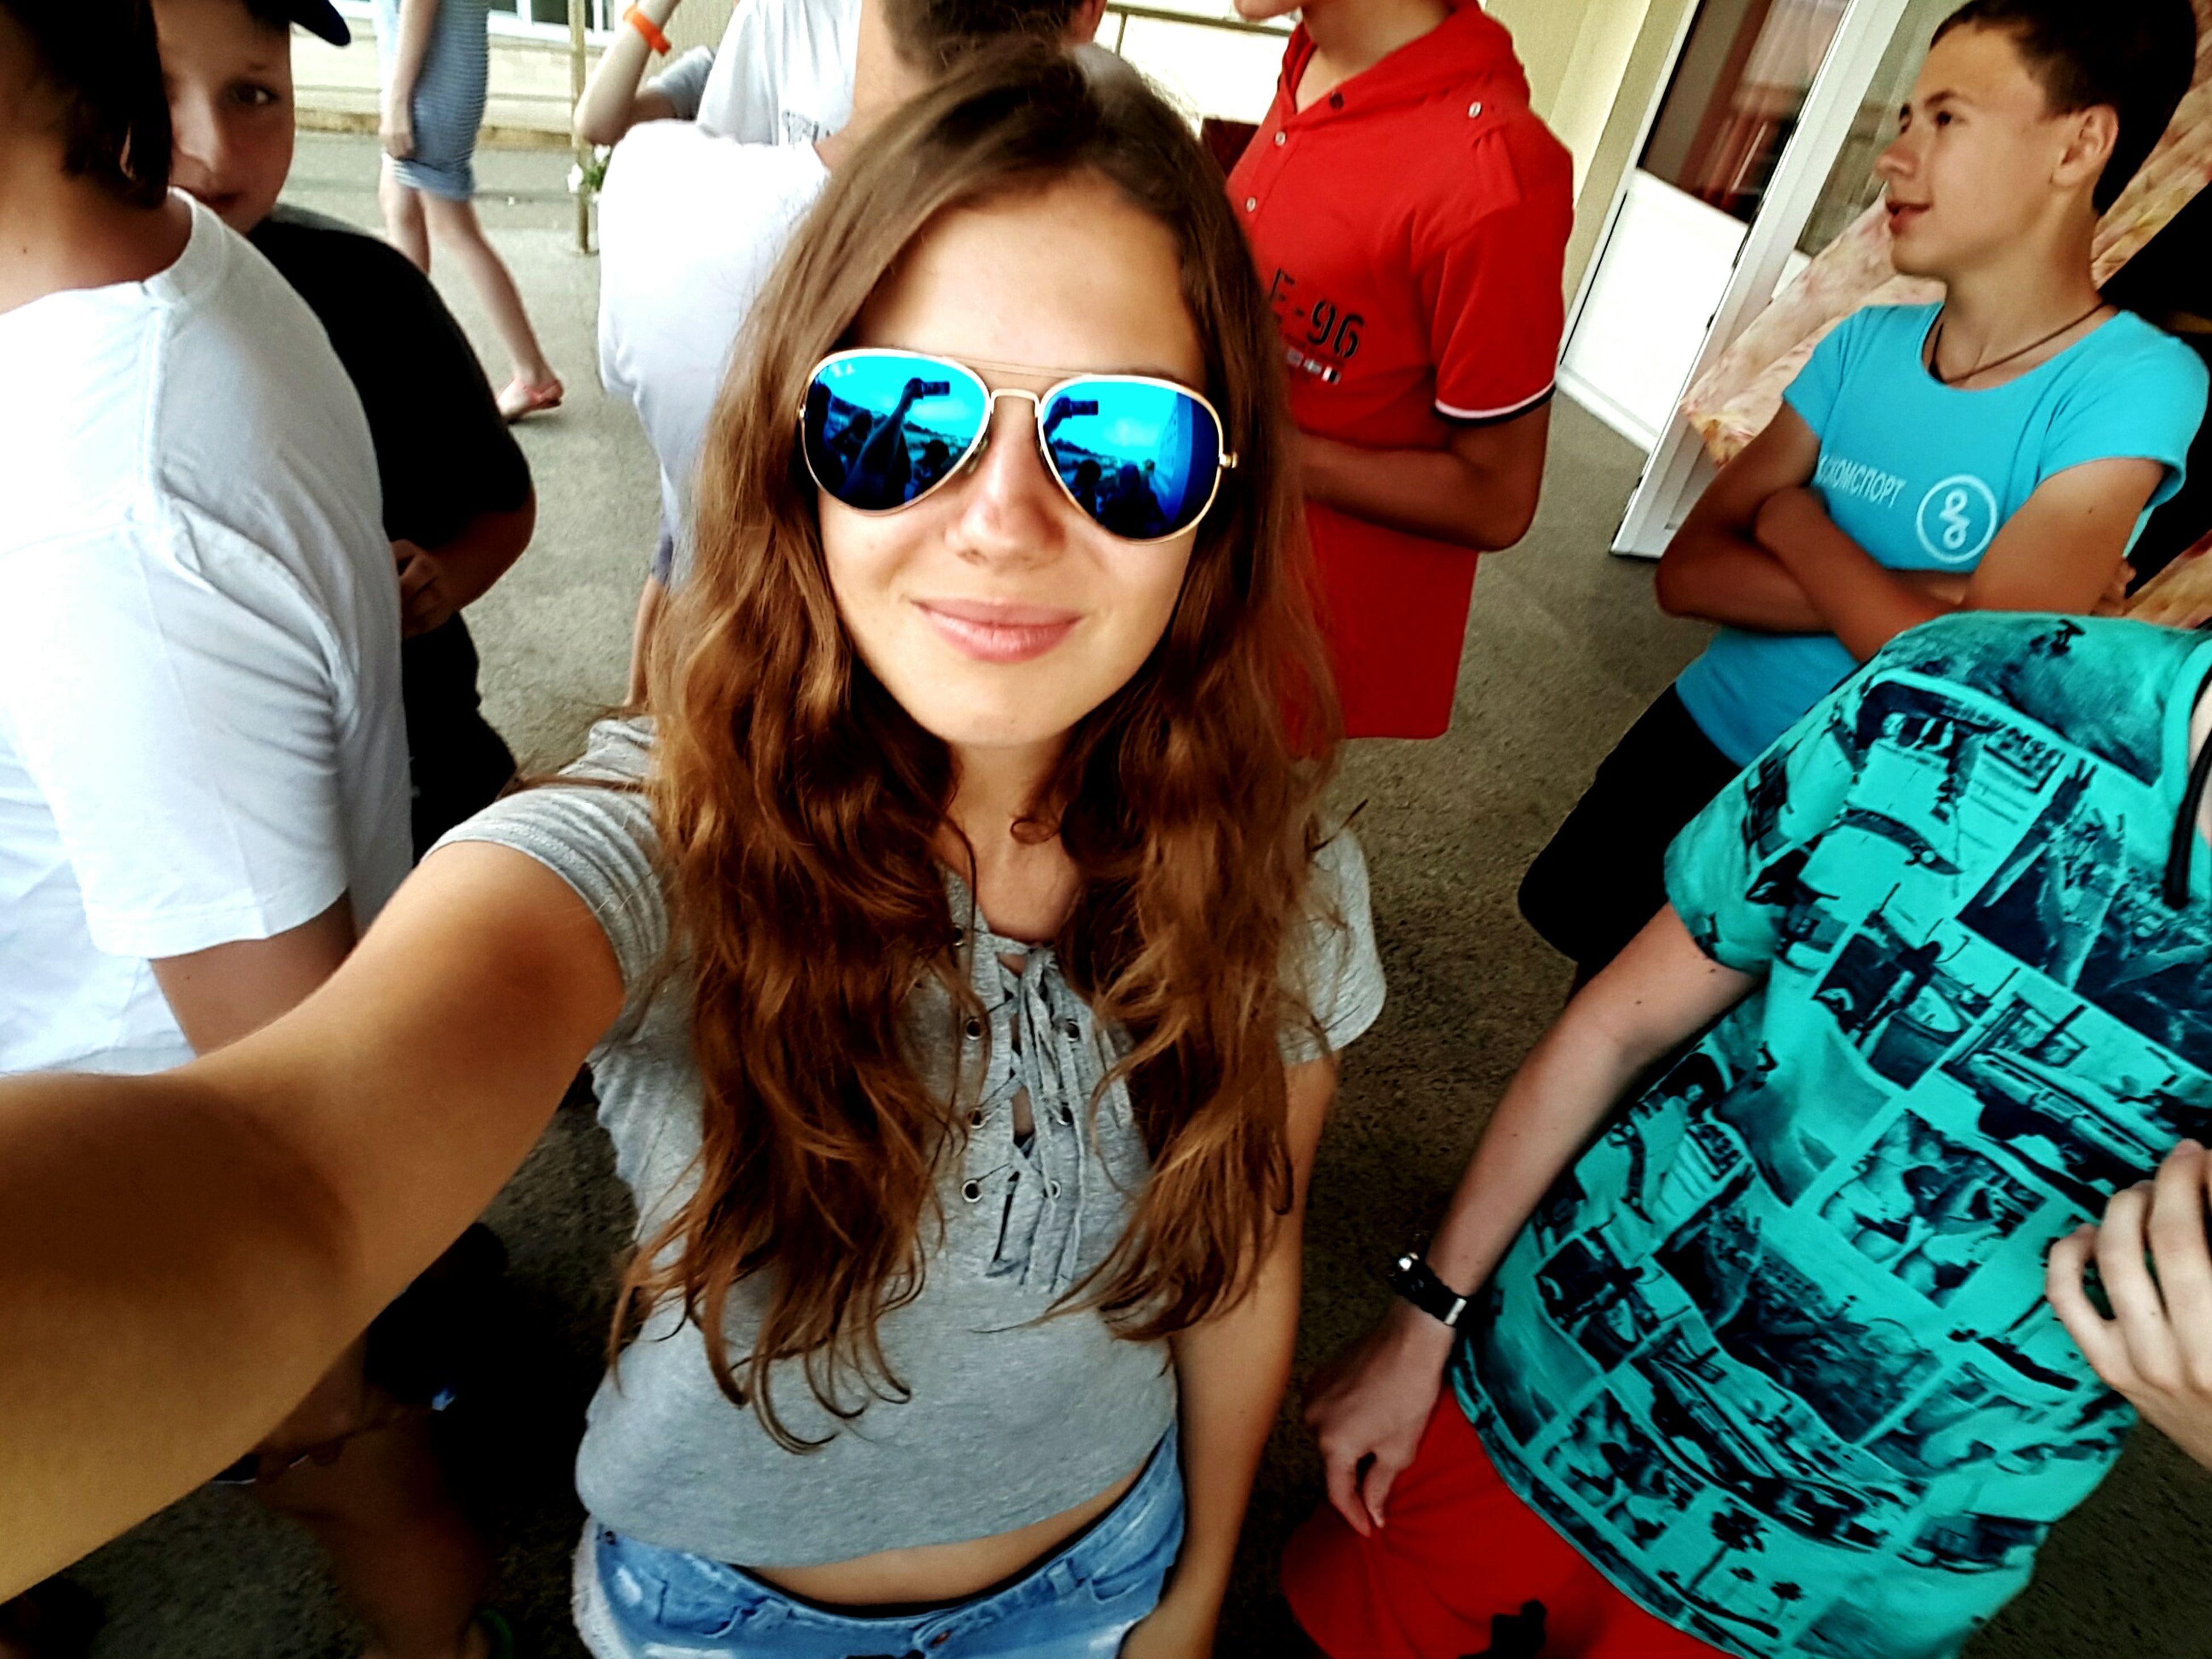 lifestyles, leisure activity, person, togetherness, portrait, casual clothing, friendship, smiling, young adult, front view, looking at camera, happiness, young women, bonding, sunglasses, holding, love